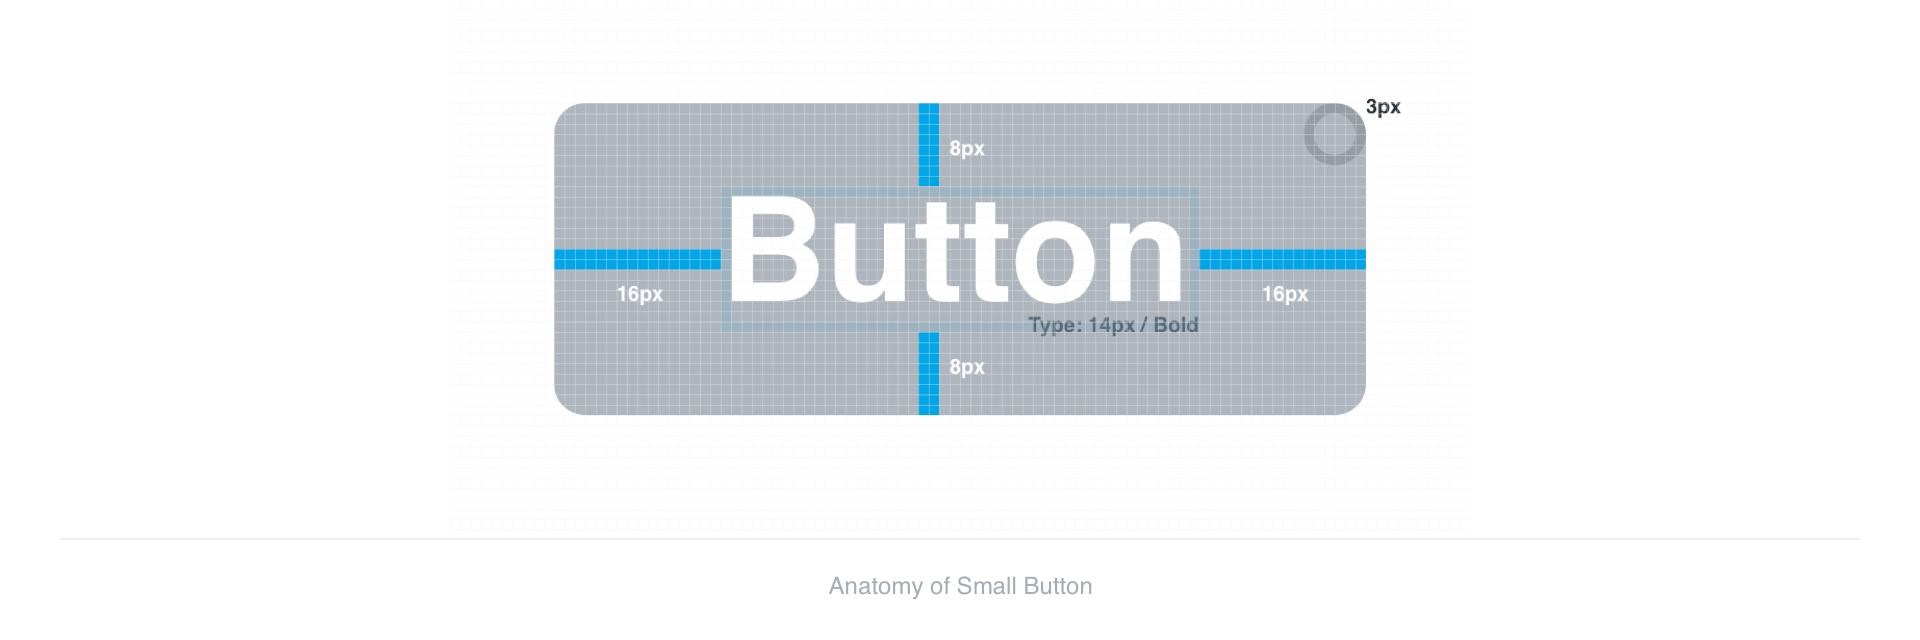 Anatomy of Small Button